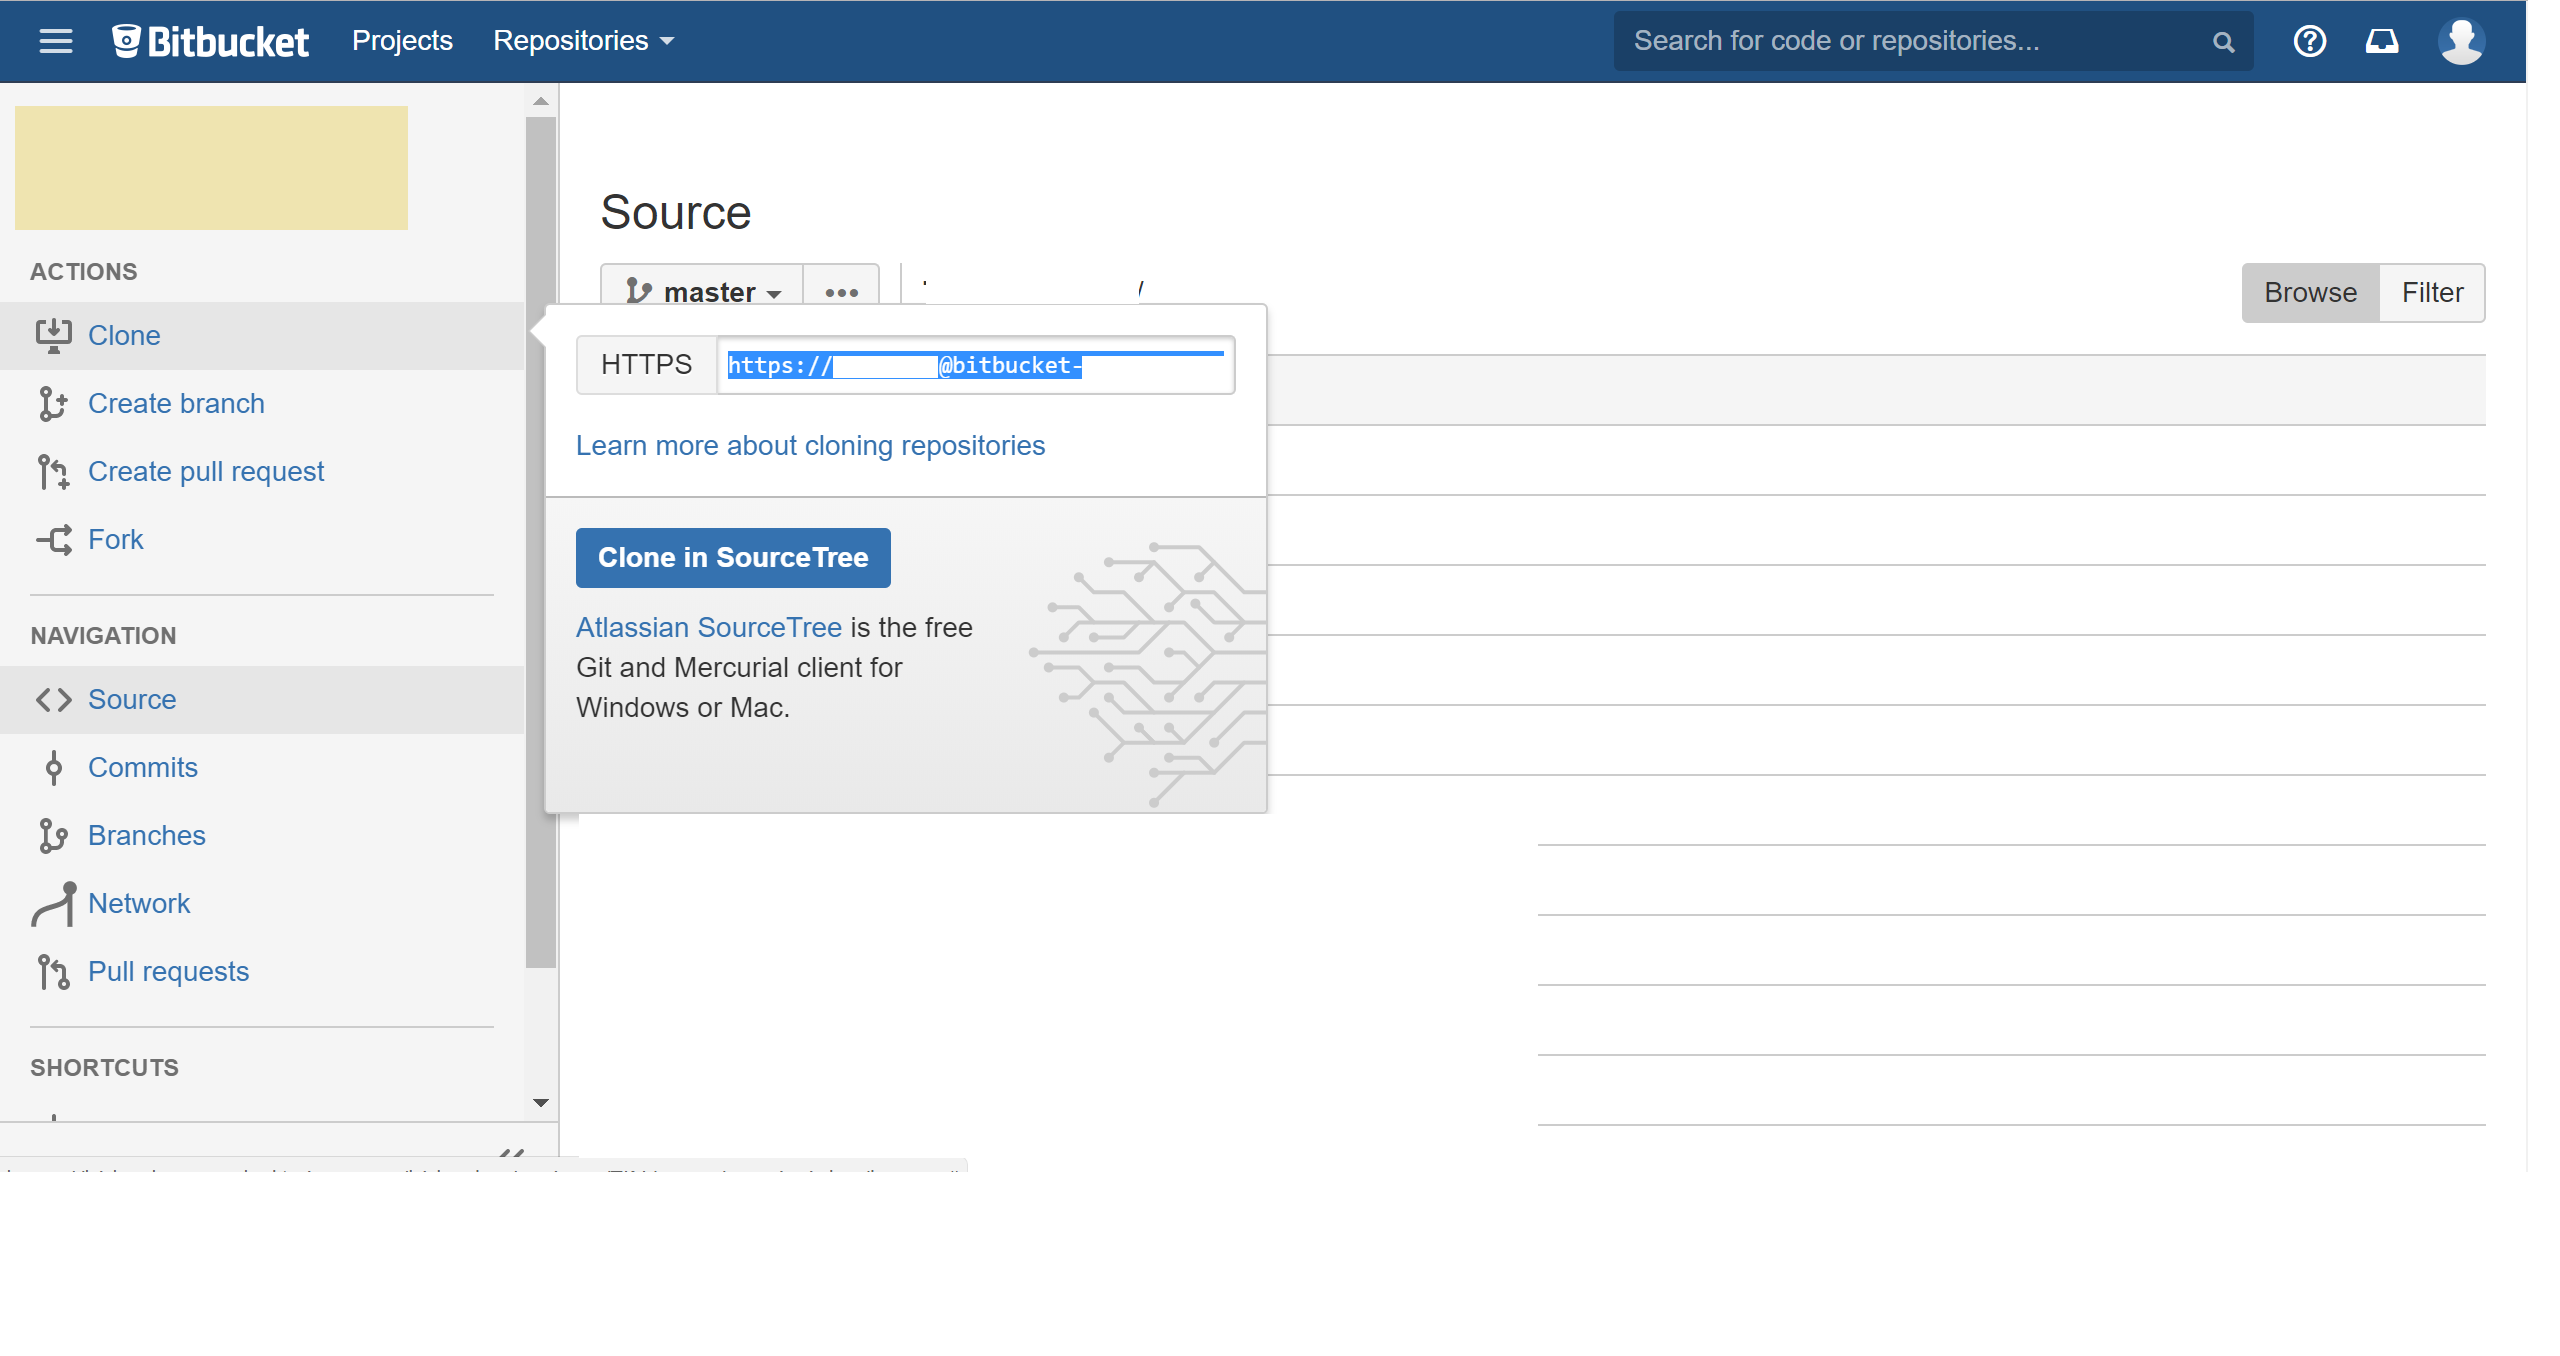 How to use Bitbucket repository in the Github Desktop